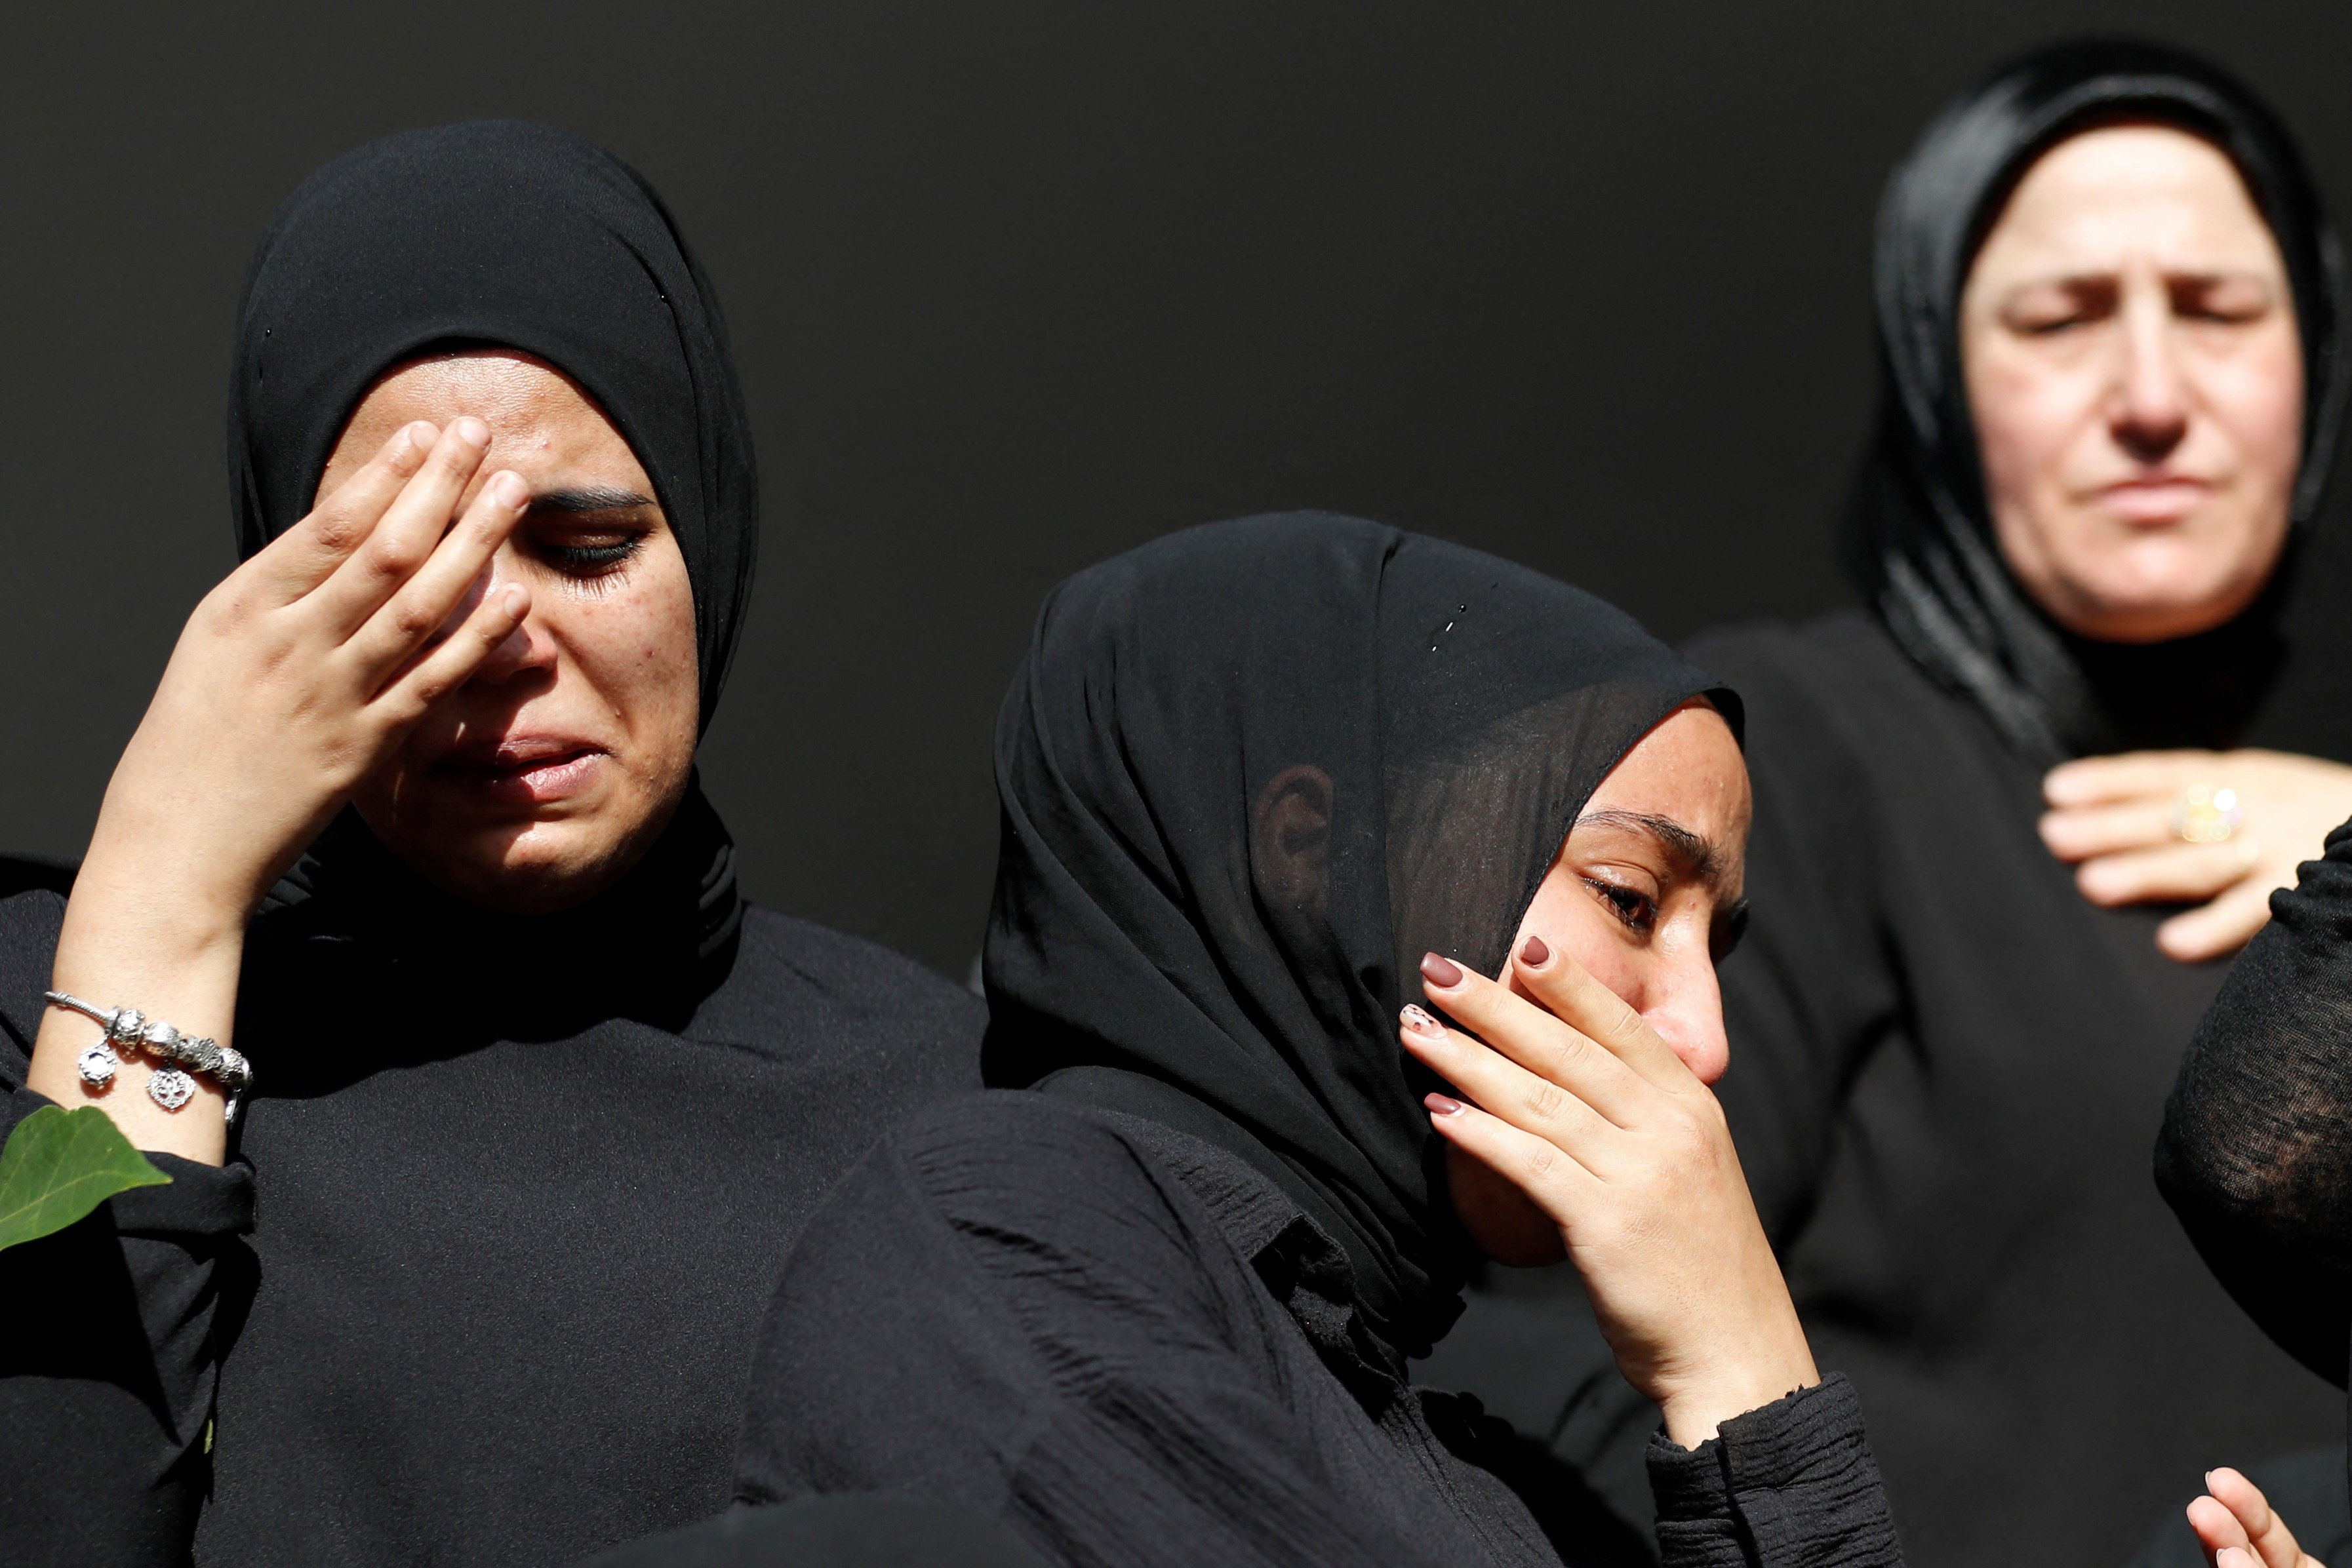 Women mourn the death of Mohammad Kiwan, a 17-year-old Palestinian who succumbed to his wounds after being shot during confrontations with Israeli troops last week, during his funeral in the mostly Arab city of Umm al-Fahm in northern Israel, on May 20, 2021.